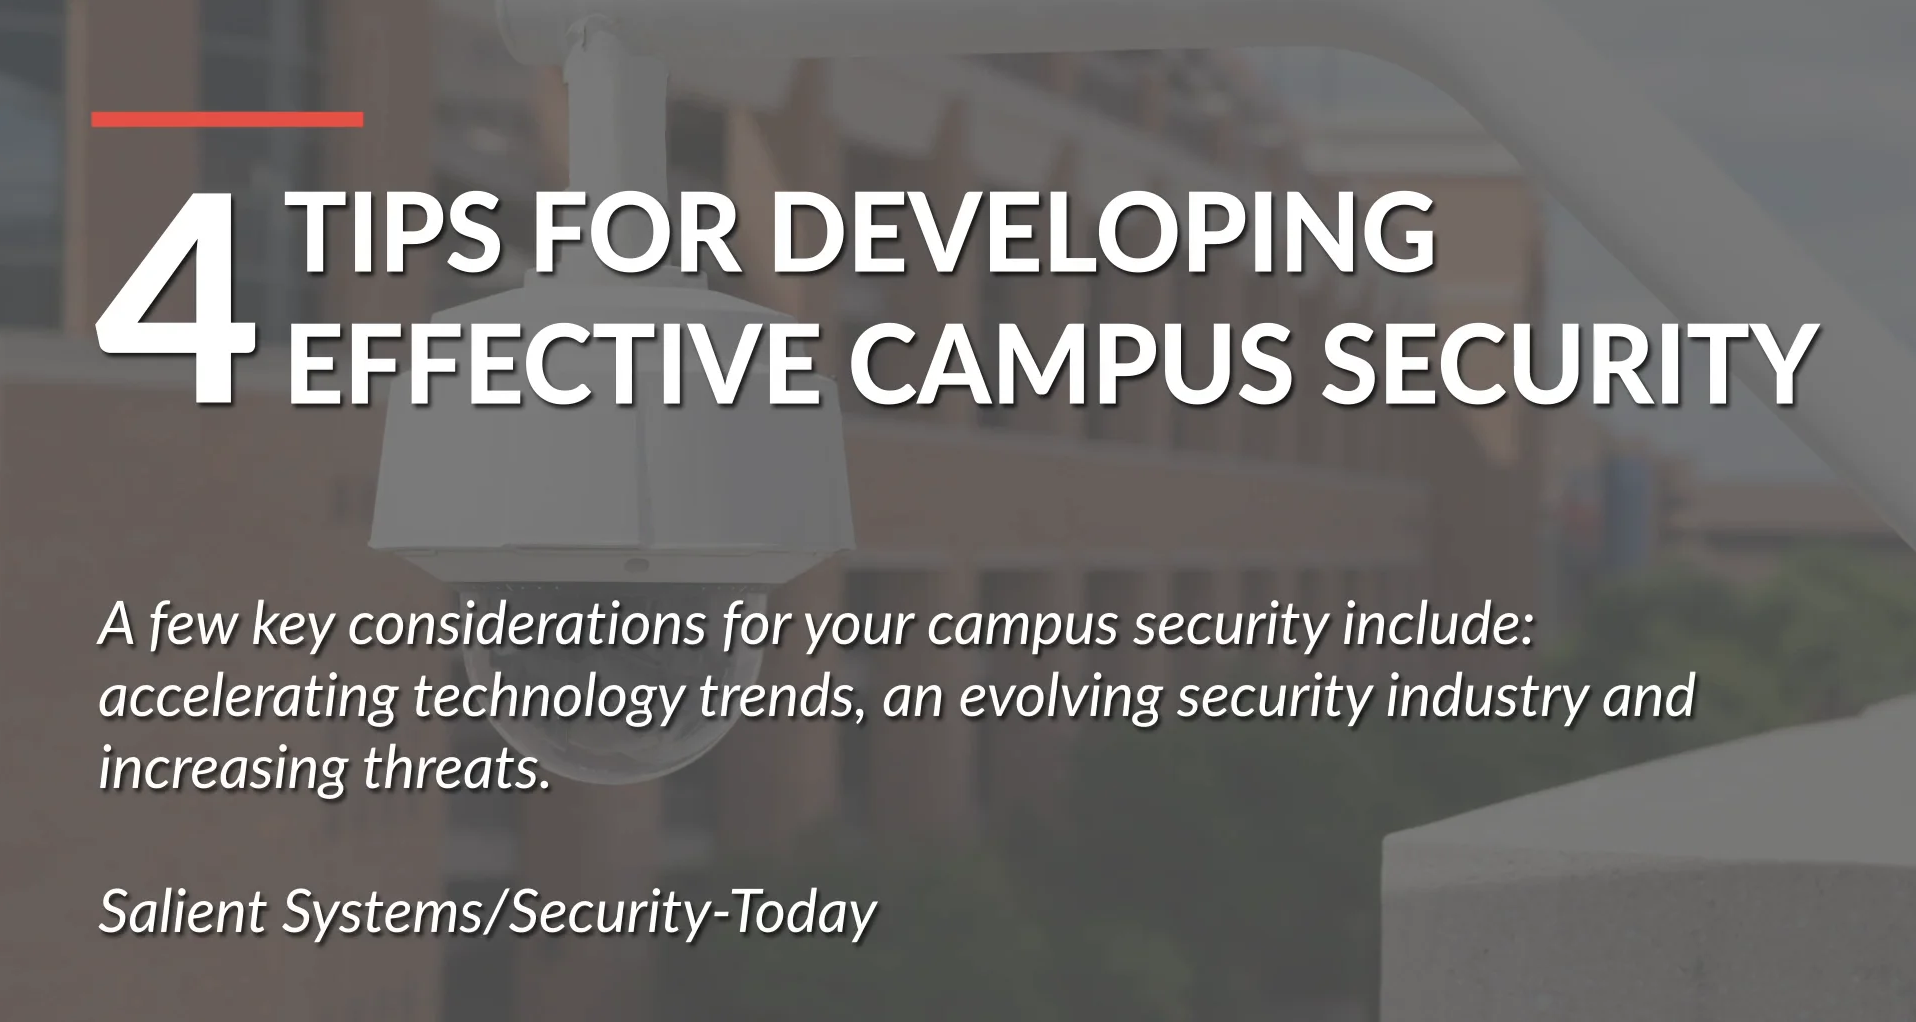 poster image for 4 Tips for Developing Effective Campus Security video